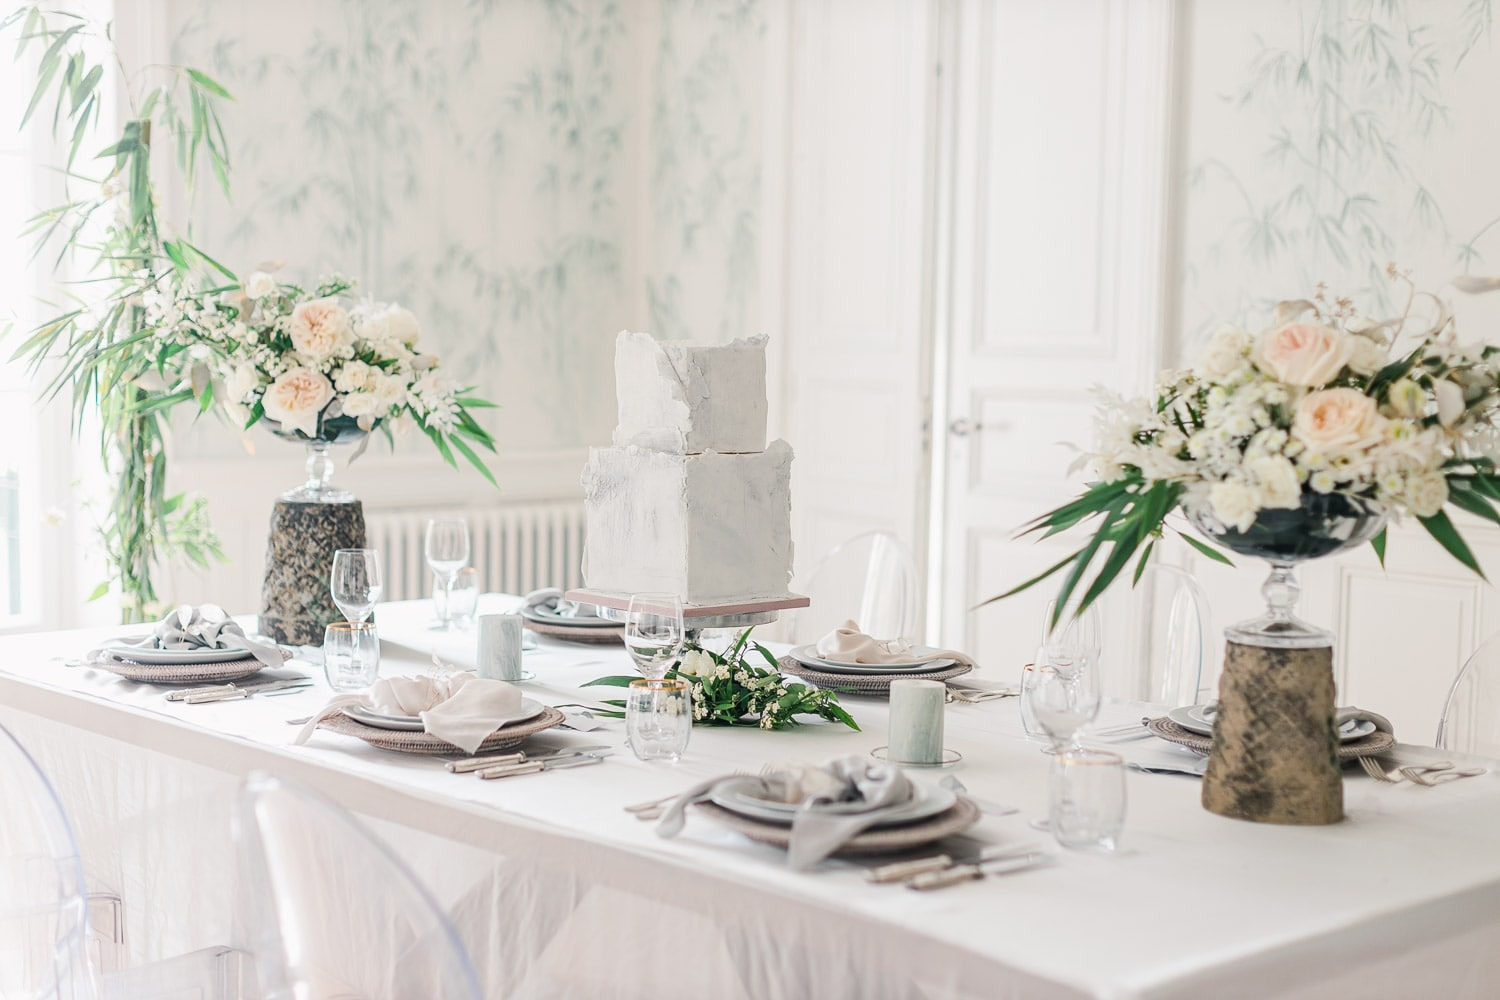 French Dusty Blue Wedding at La Maison Bambou